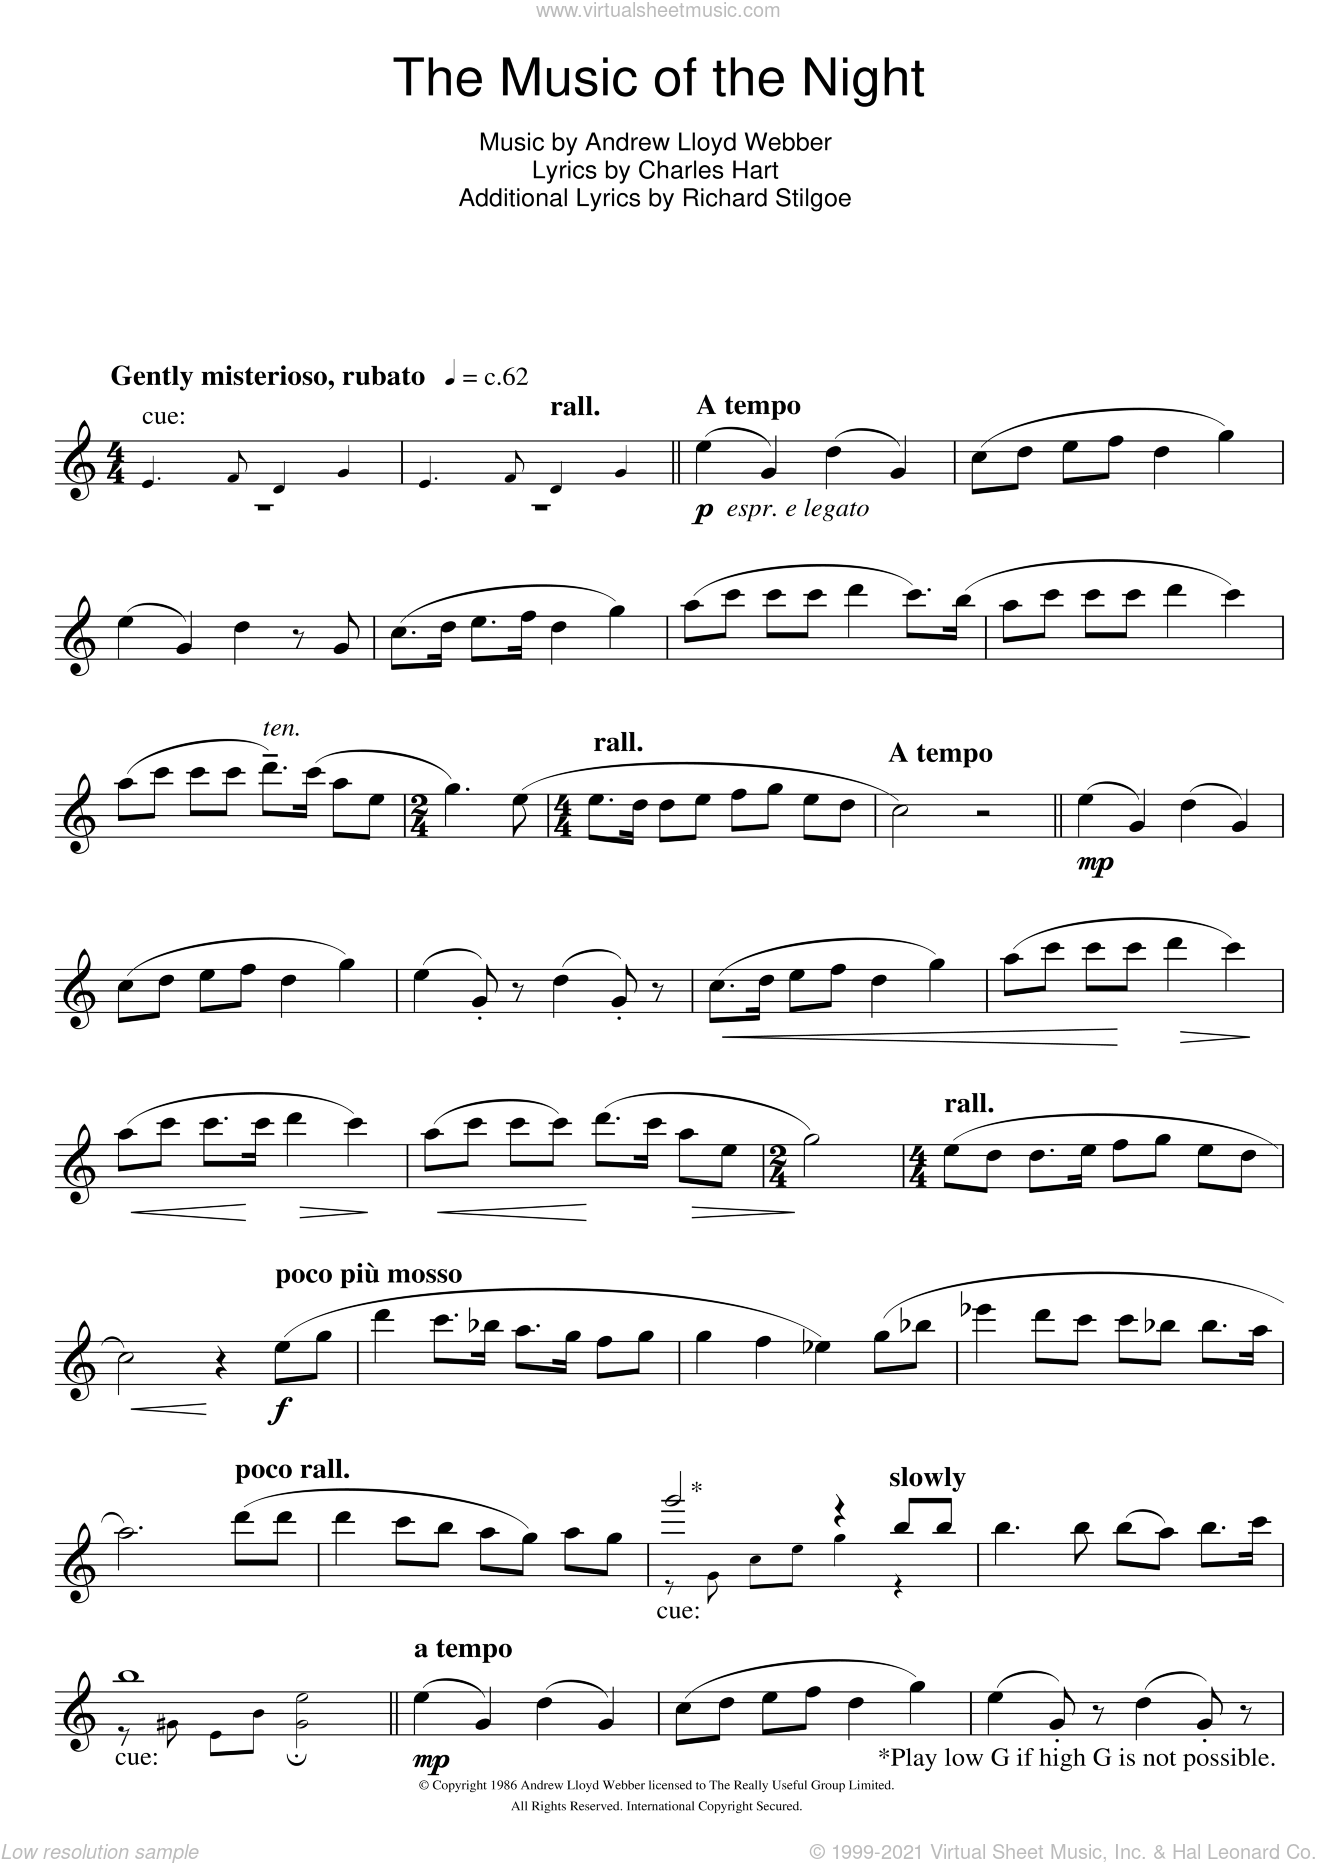 The Music Of The Night (from The Phantom Of The Opera) sheet music for flute solo by Andrew Lloyd Webber, Charles Hart and Richard Stilgoe, intermediate skill level